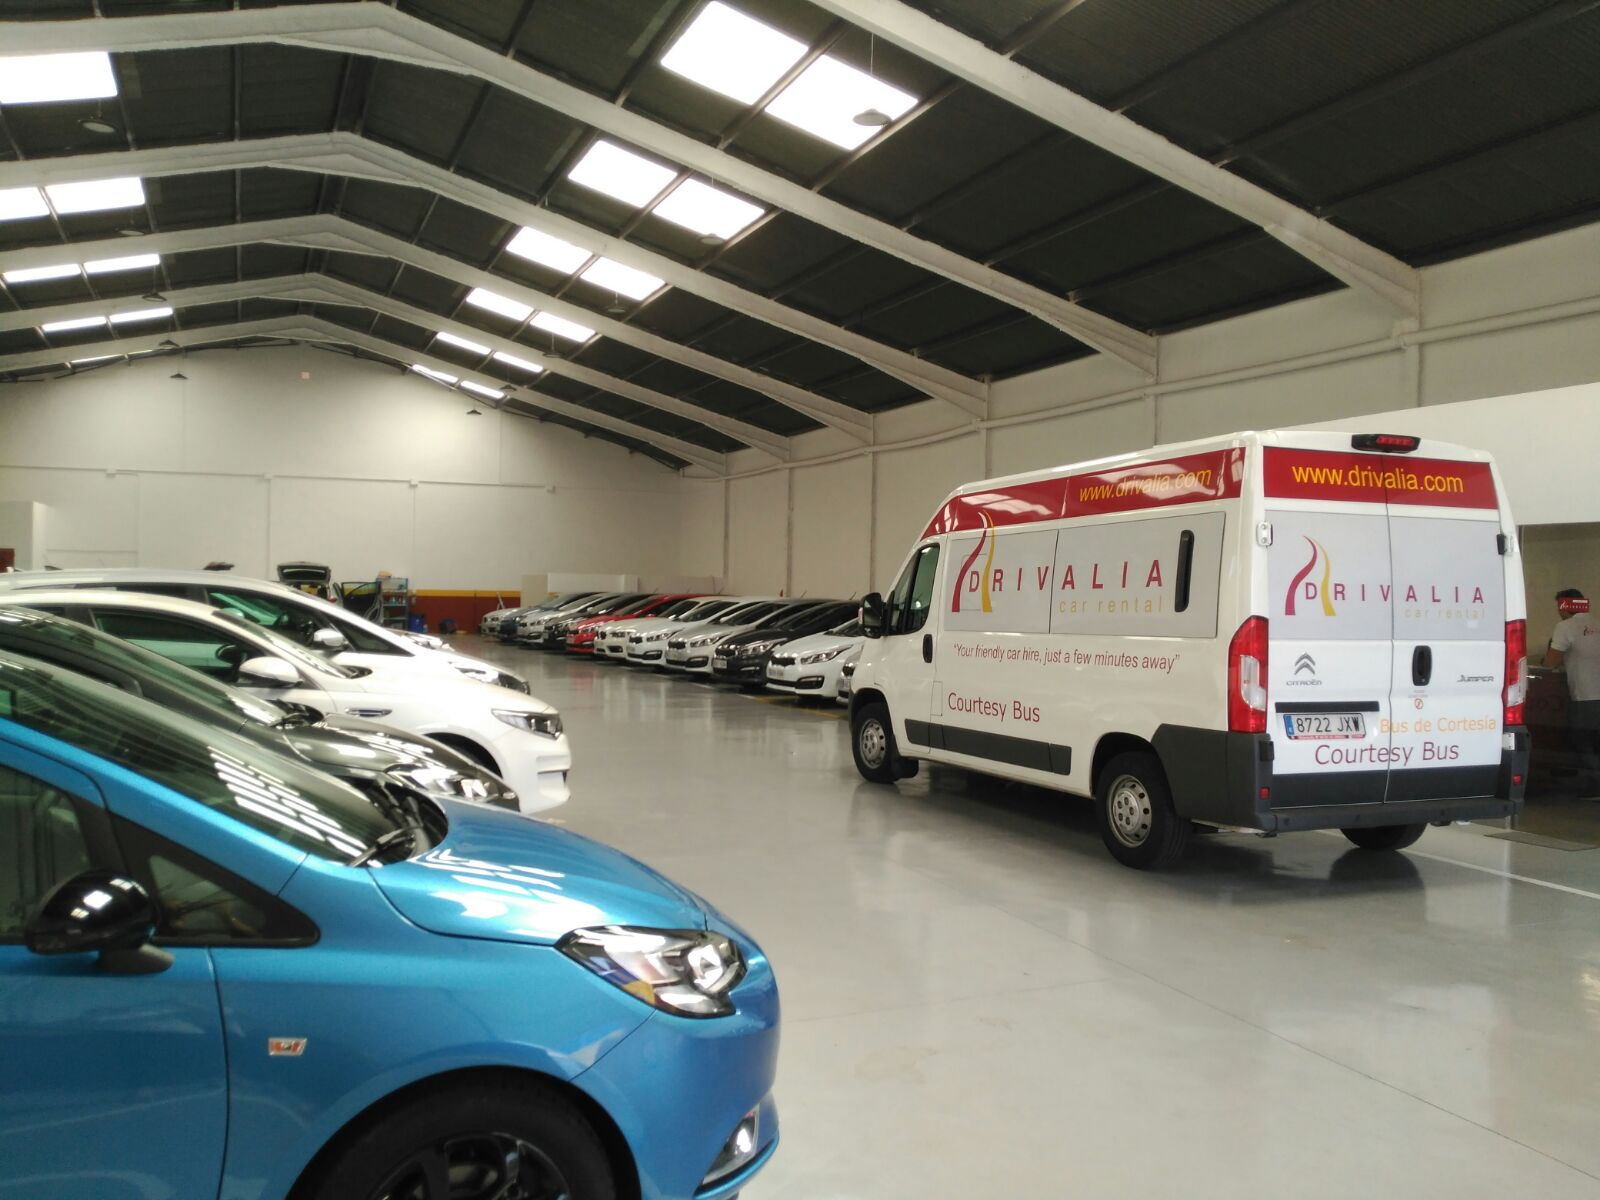 Drivalia´s new completely indoor car hire facility at Valencia airport